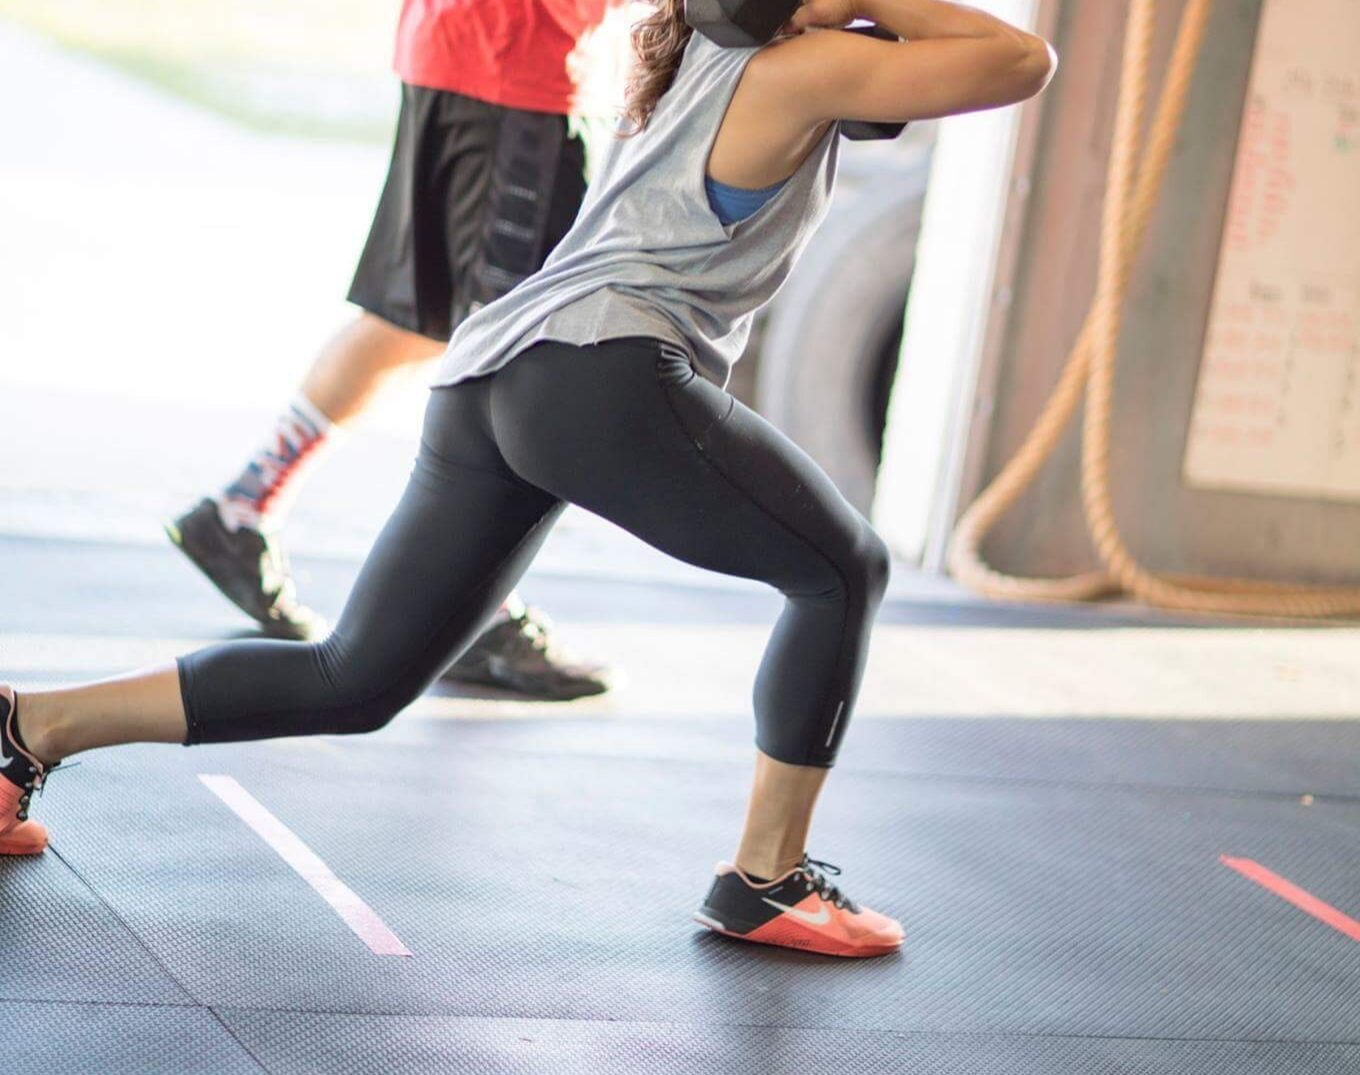 Lunge Your Way to Awesome Legs